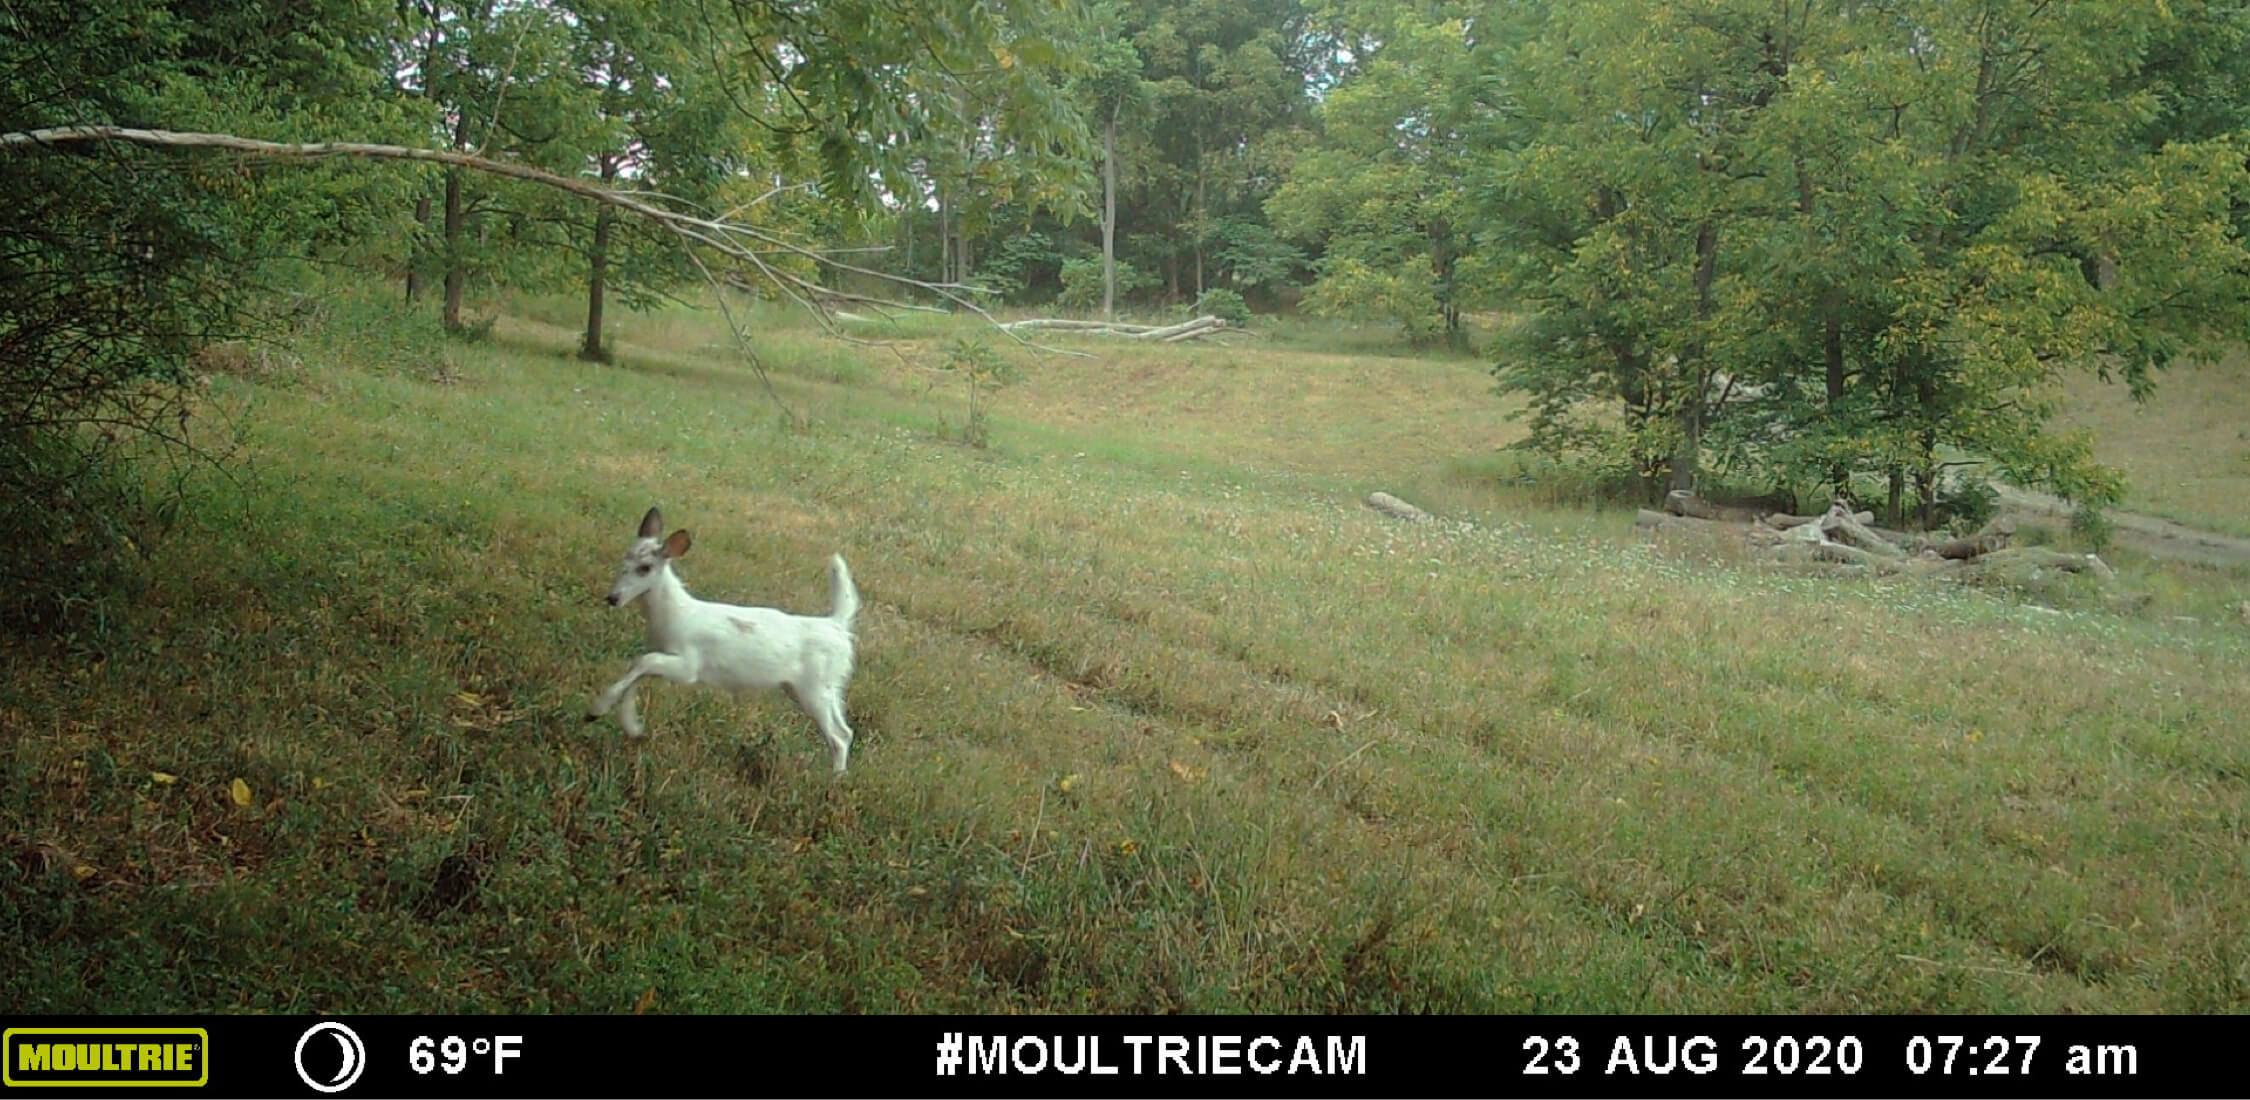 Image taken from Moultrie Mobile cellular trail camera